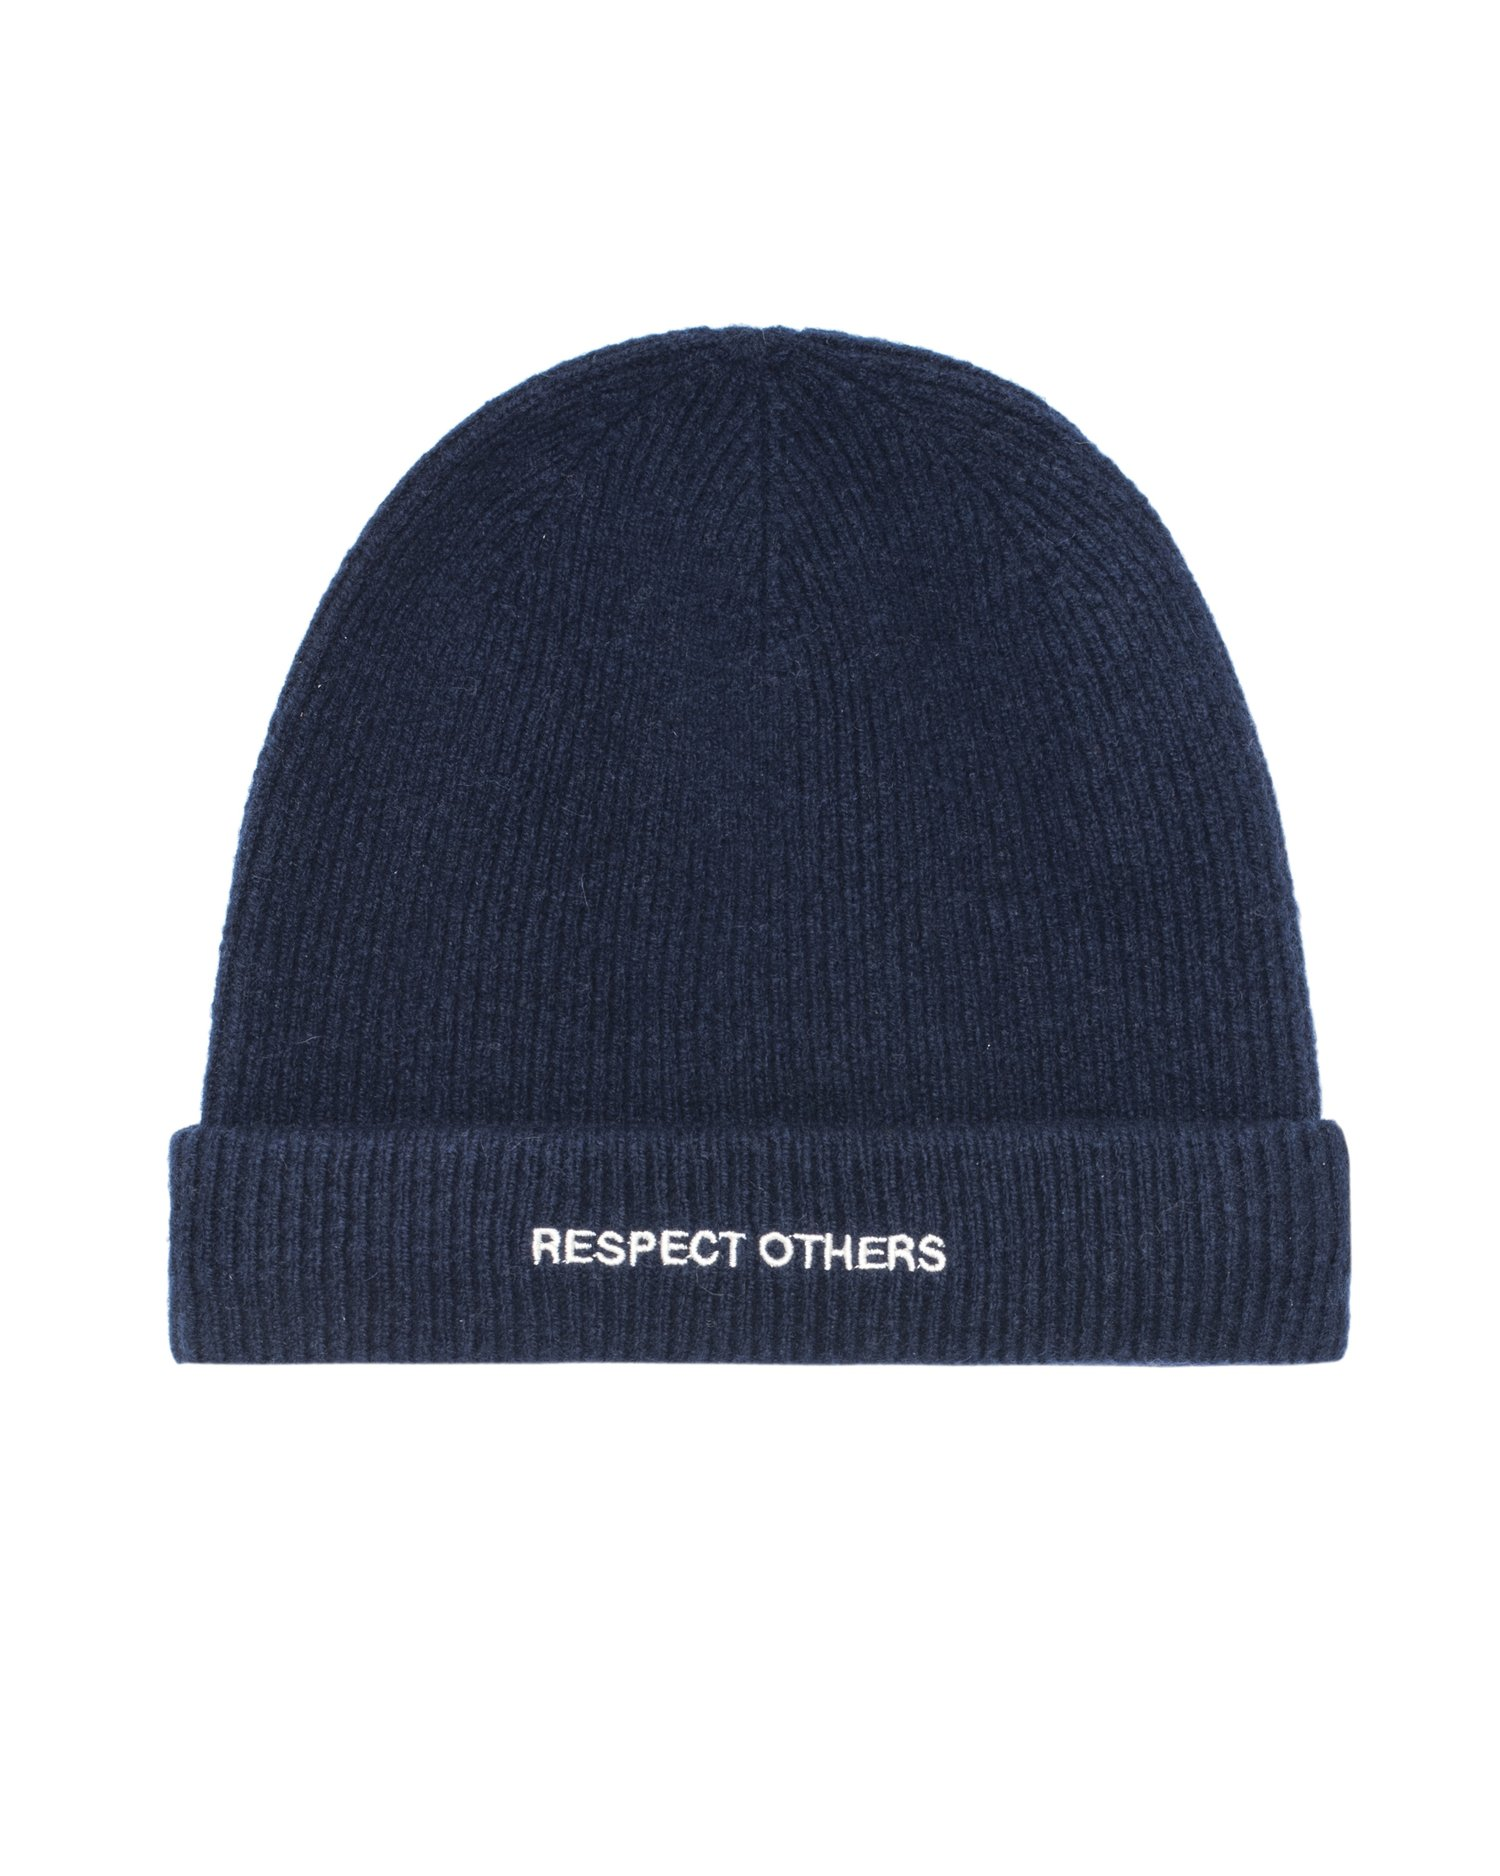 RESPECT OTHERS BEANIE